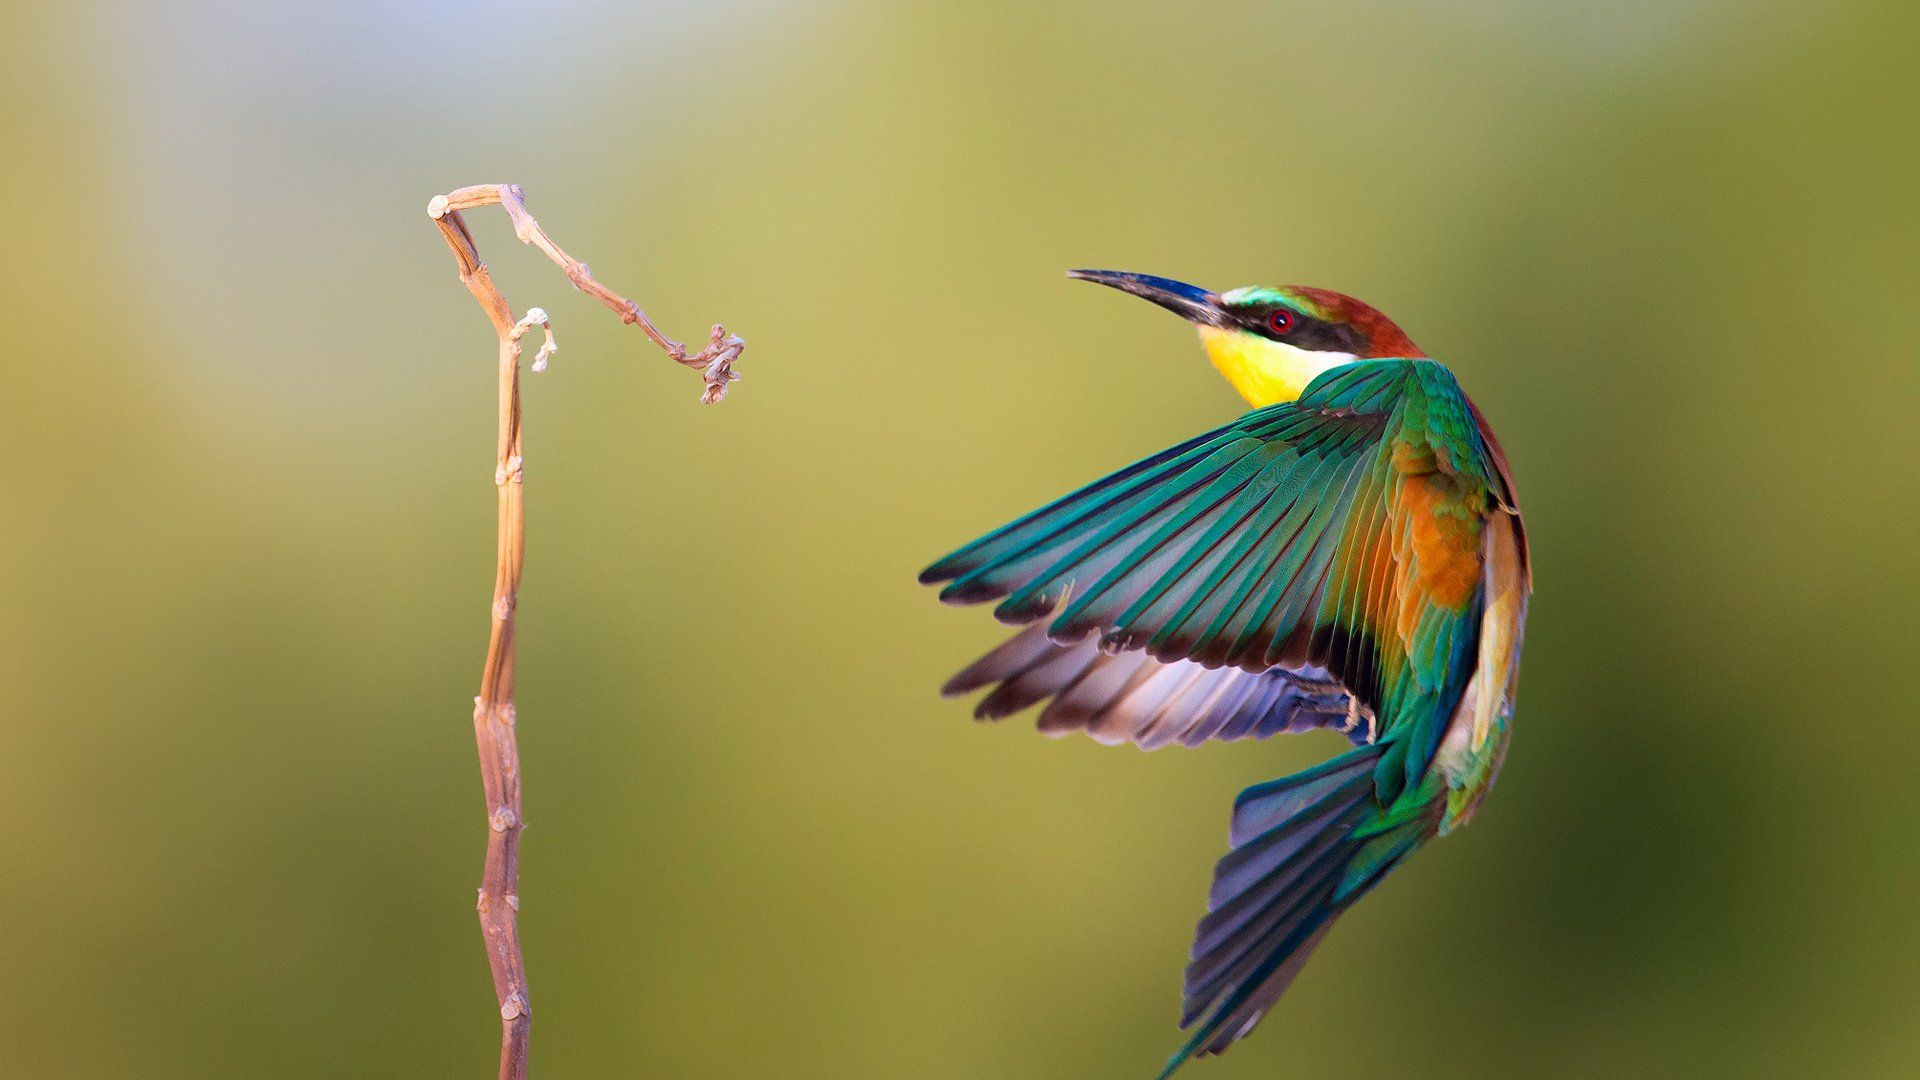 Bird And Butterfly download nice wallpaper